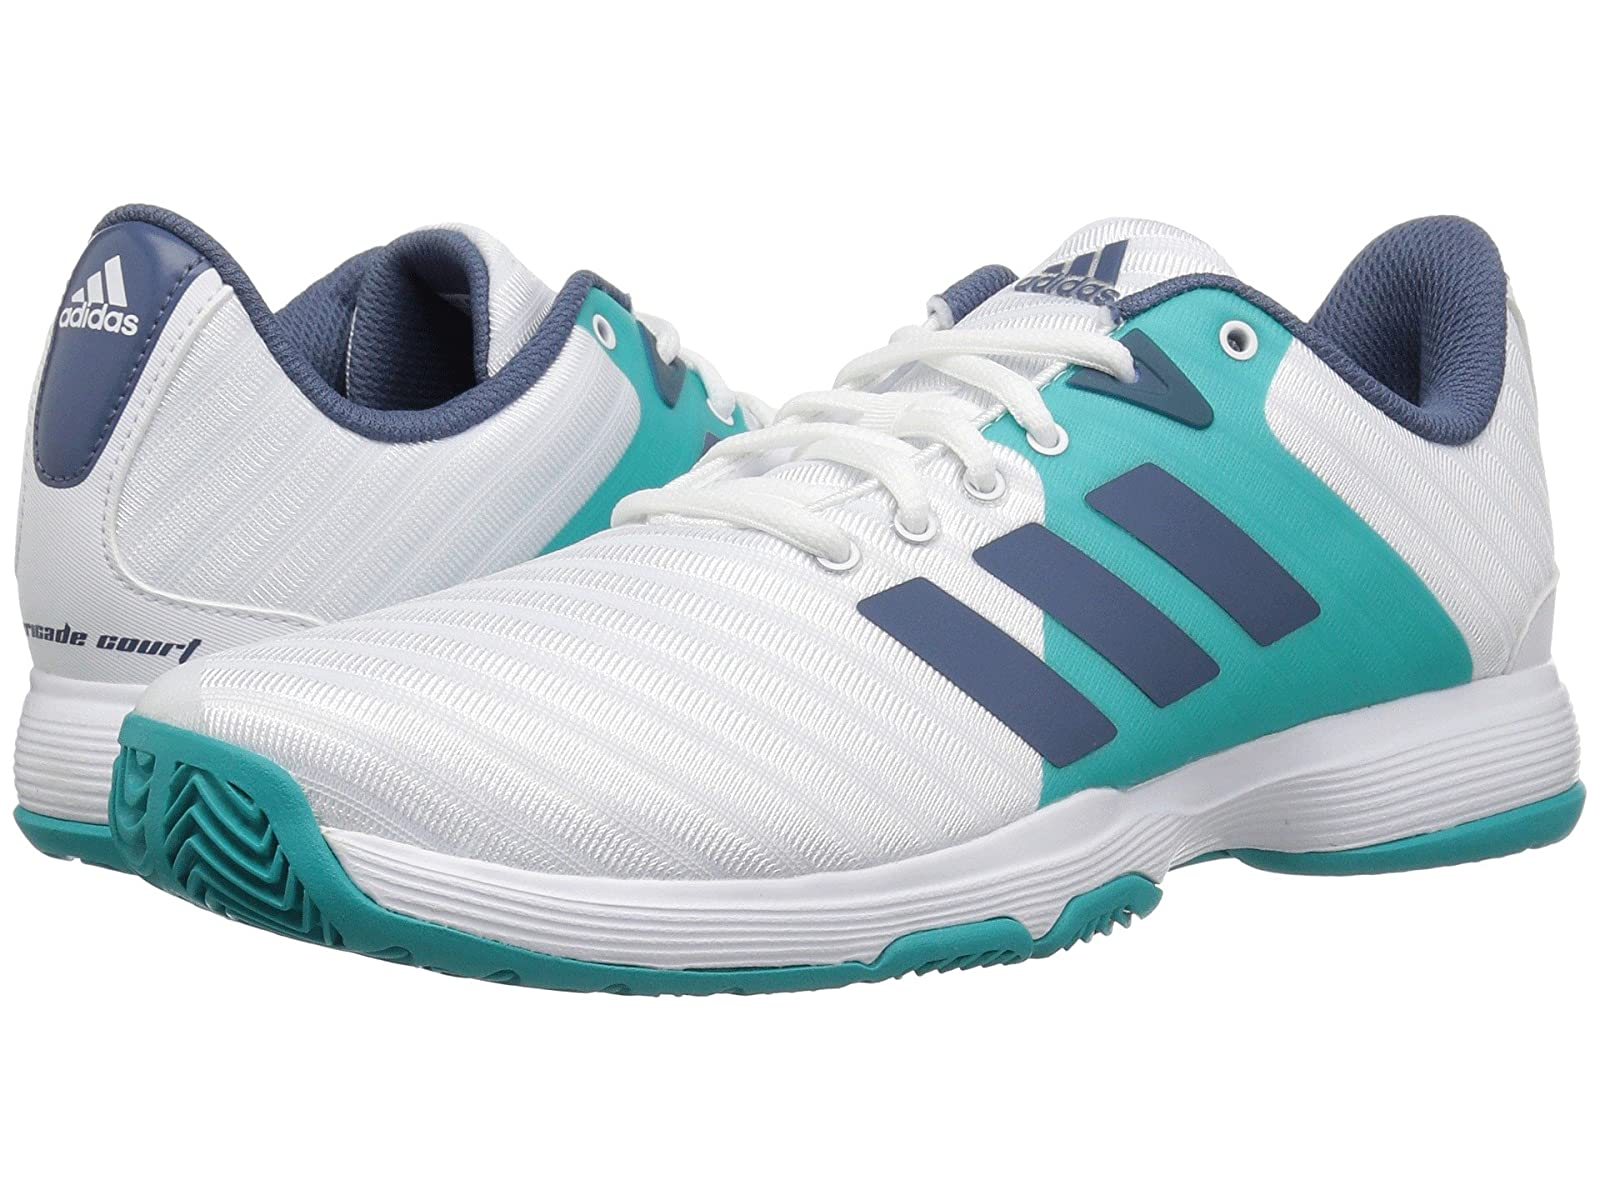 adidas Barricade Court 2Atmospheric grades have affordable shoes